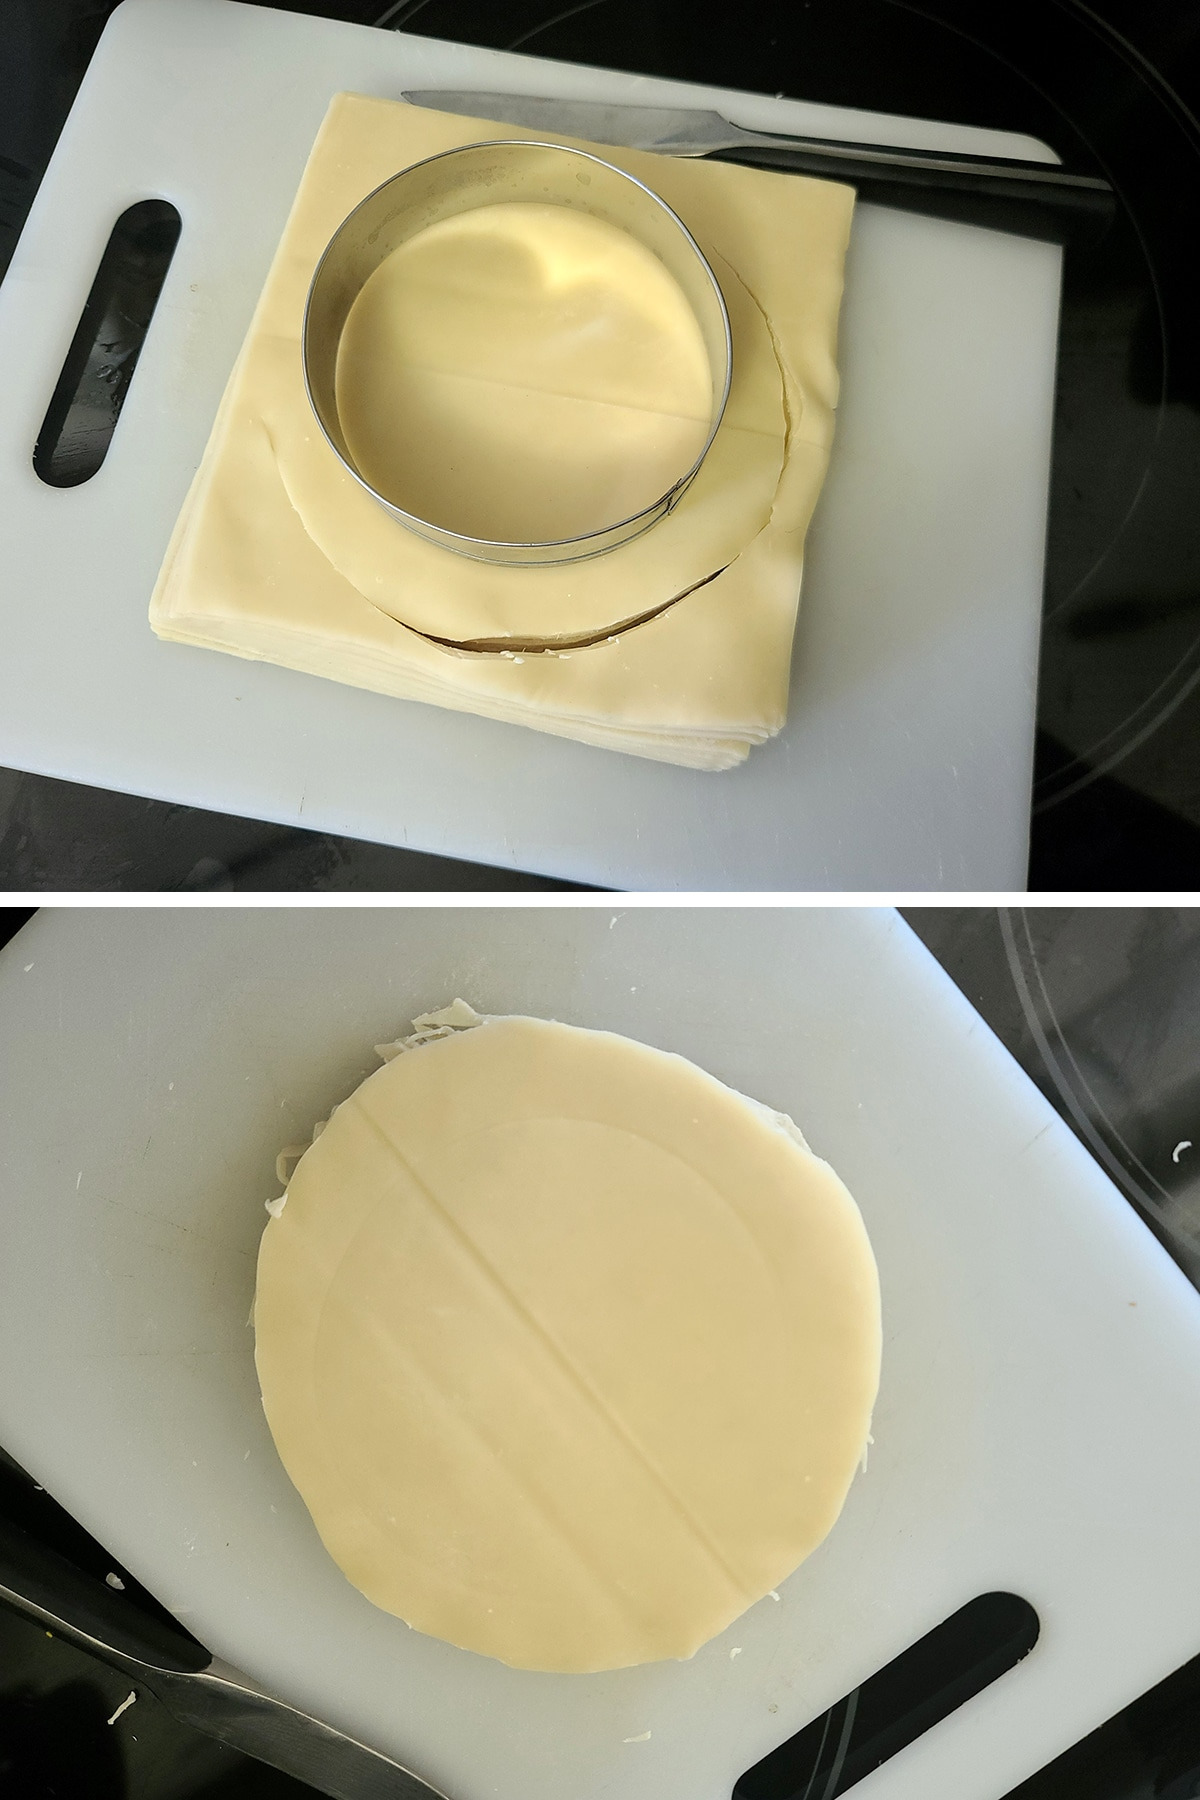 A two part image showing an english muffin ring being used to cut round wrappers out of egg roll square wrappers.